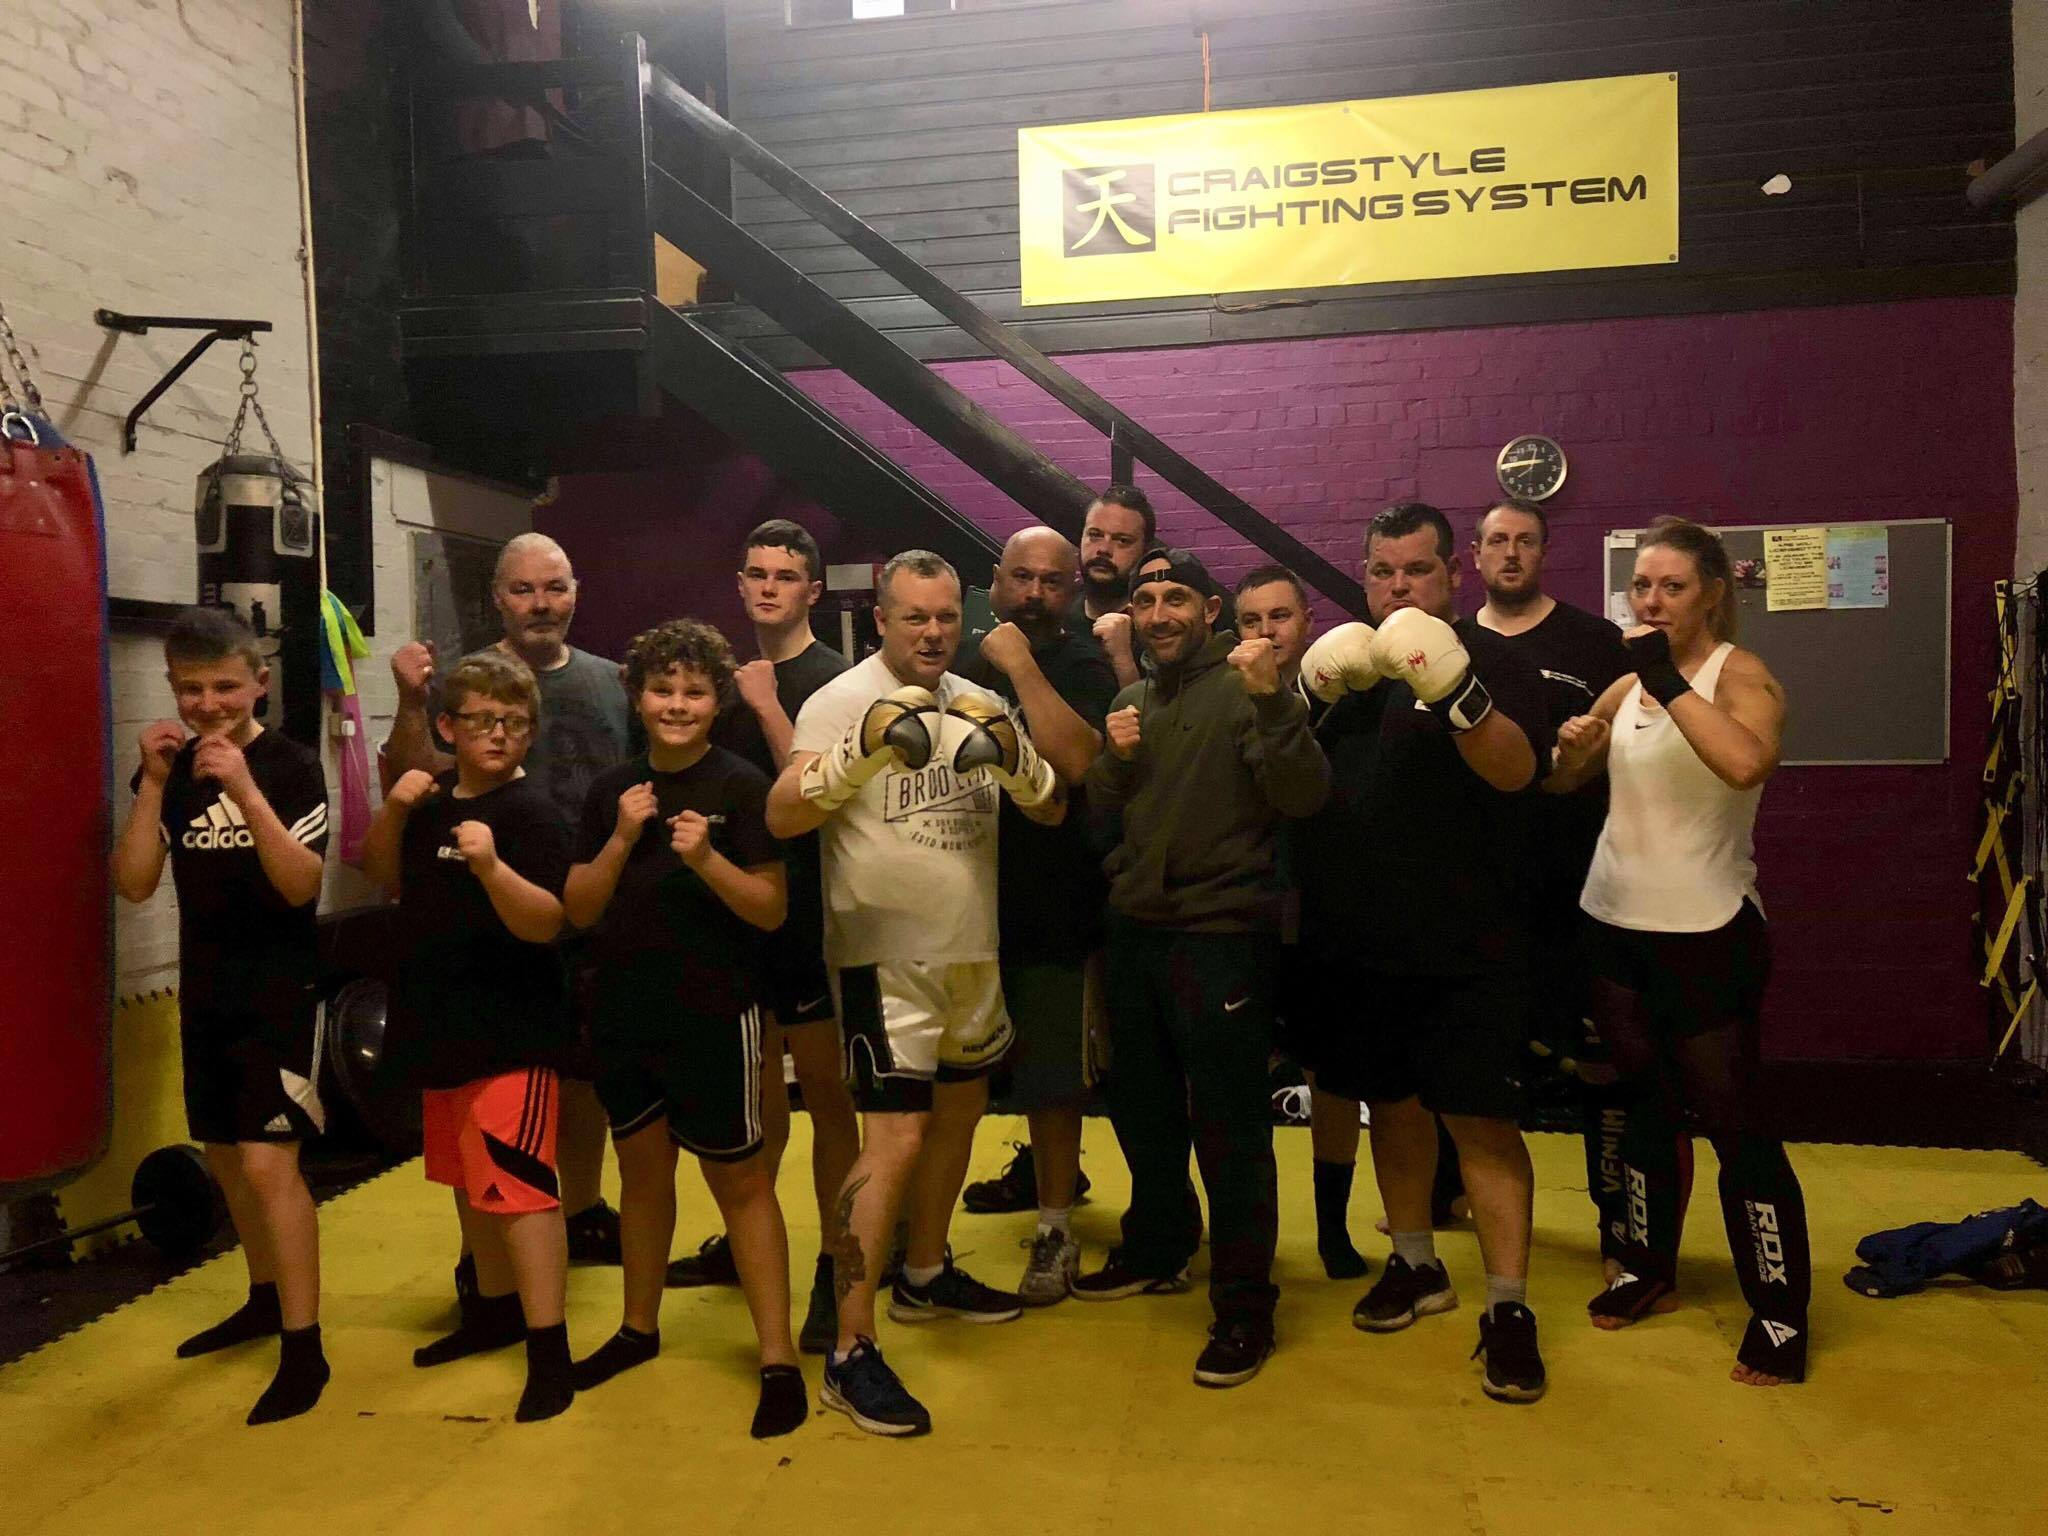 FIGHT NIGHT: Members of North-East Bikers Against Bullies are taking part in a charity boxing night to raise money